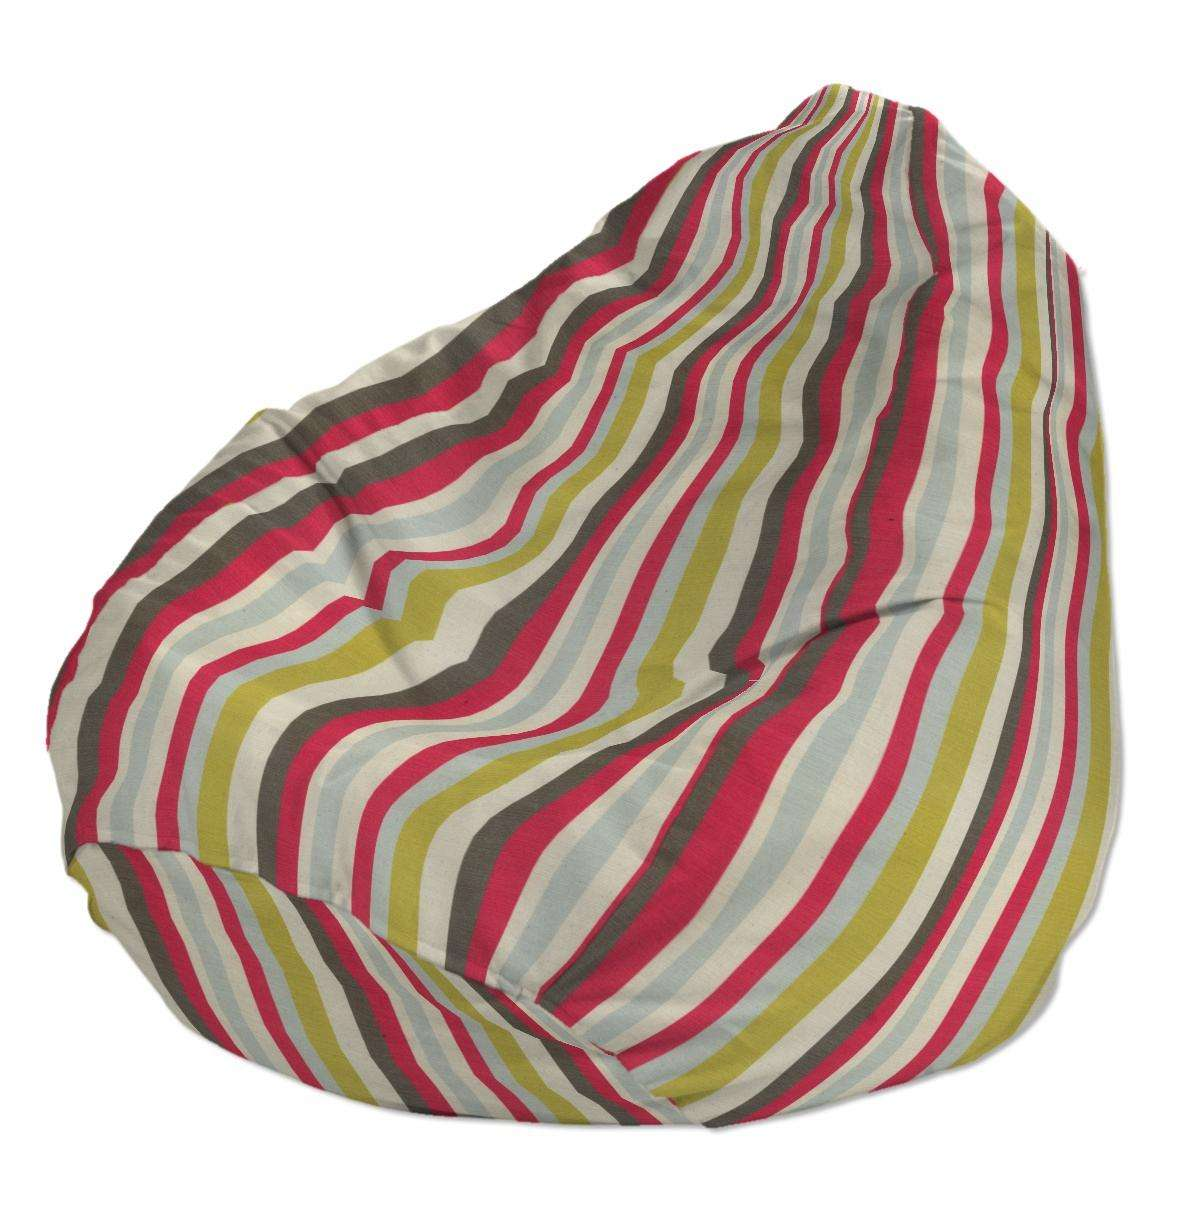 Beanbag Ø50 x 85 cm (20 x 33,5 inch) in collection Flowers, fabric: 140-81